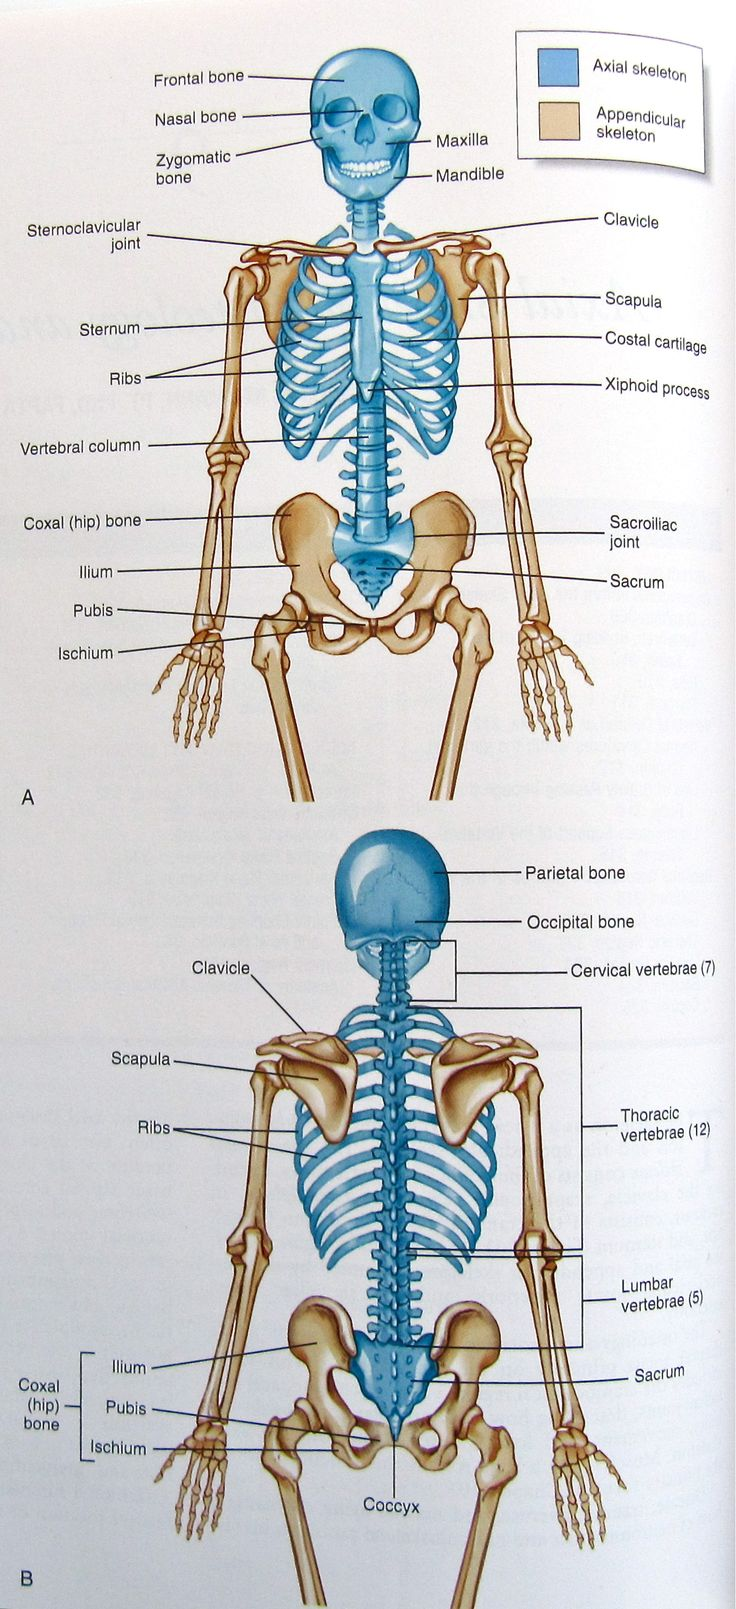 Worksheets Axial Skeleton Worksheet best 25 axial skeleton ideas on pinterest anatomy bones appendicular and skeleton